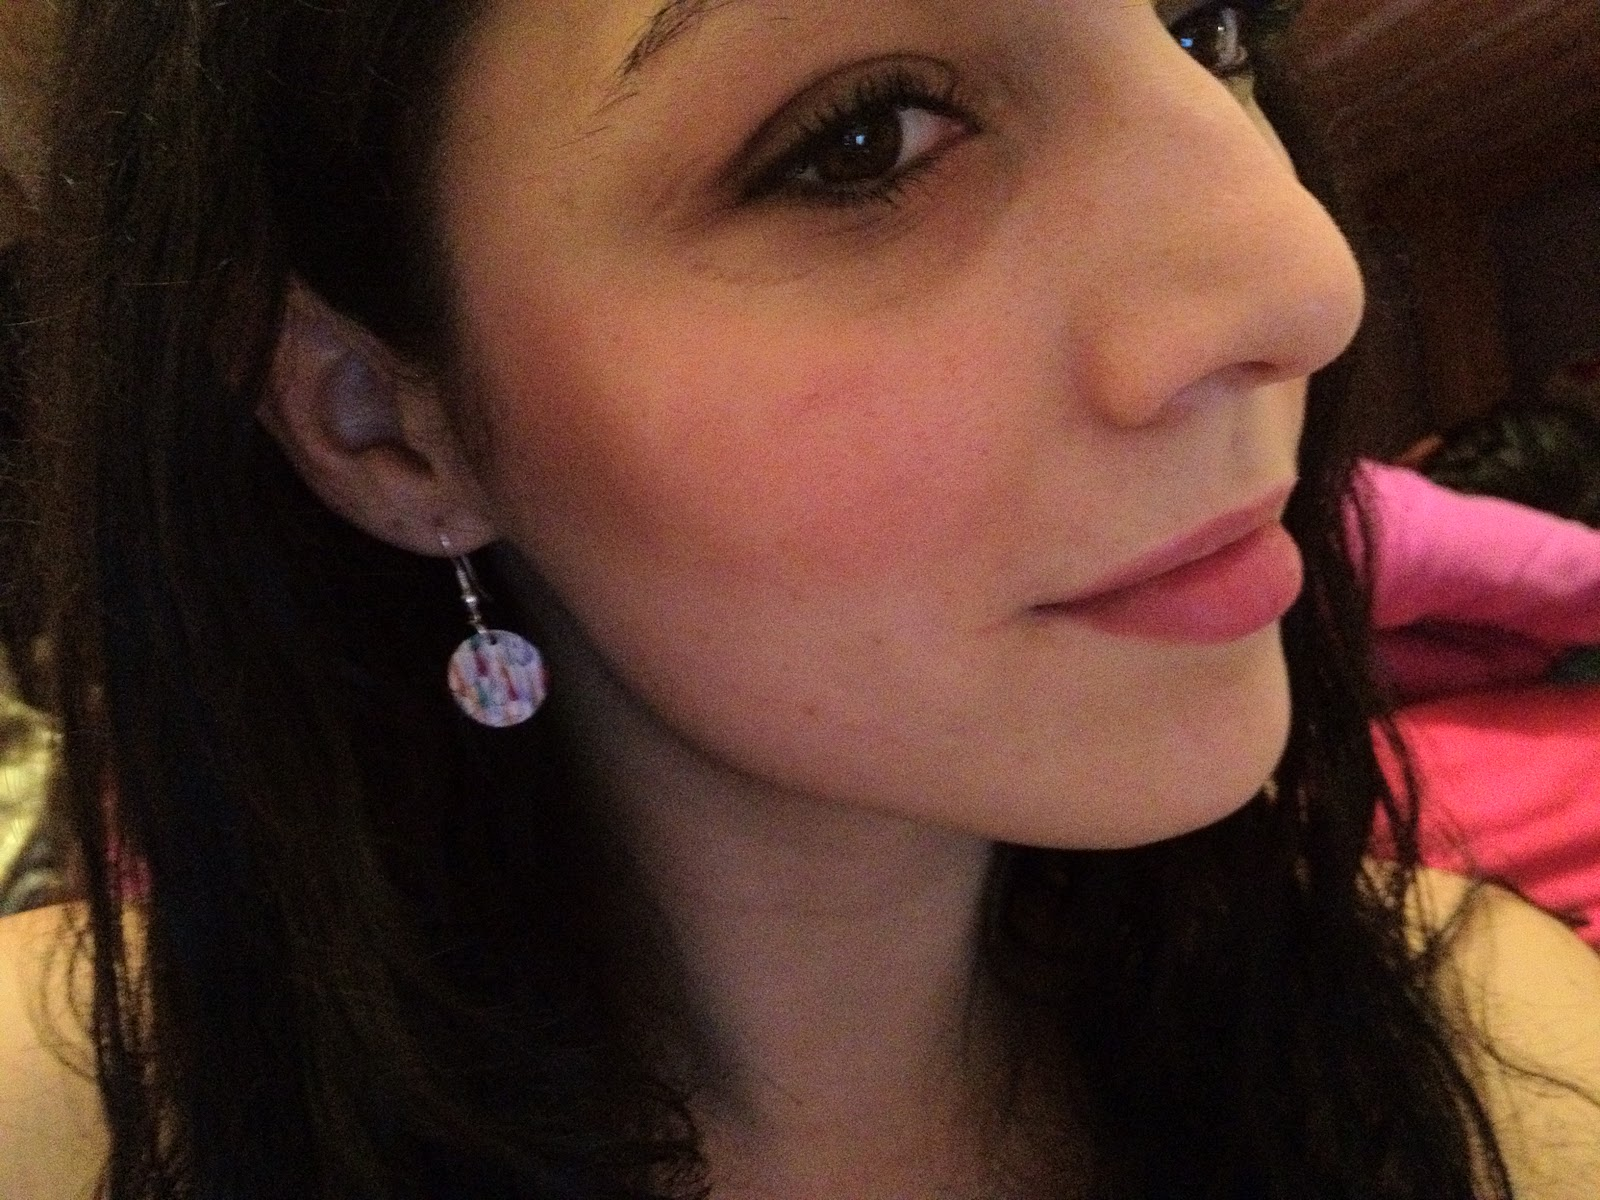 Close up of raindrop earrings